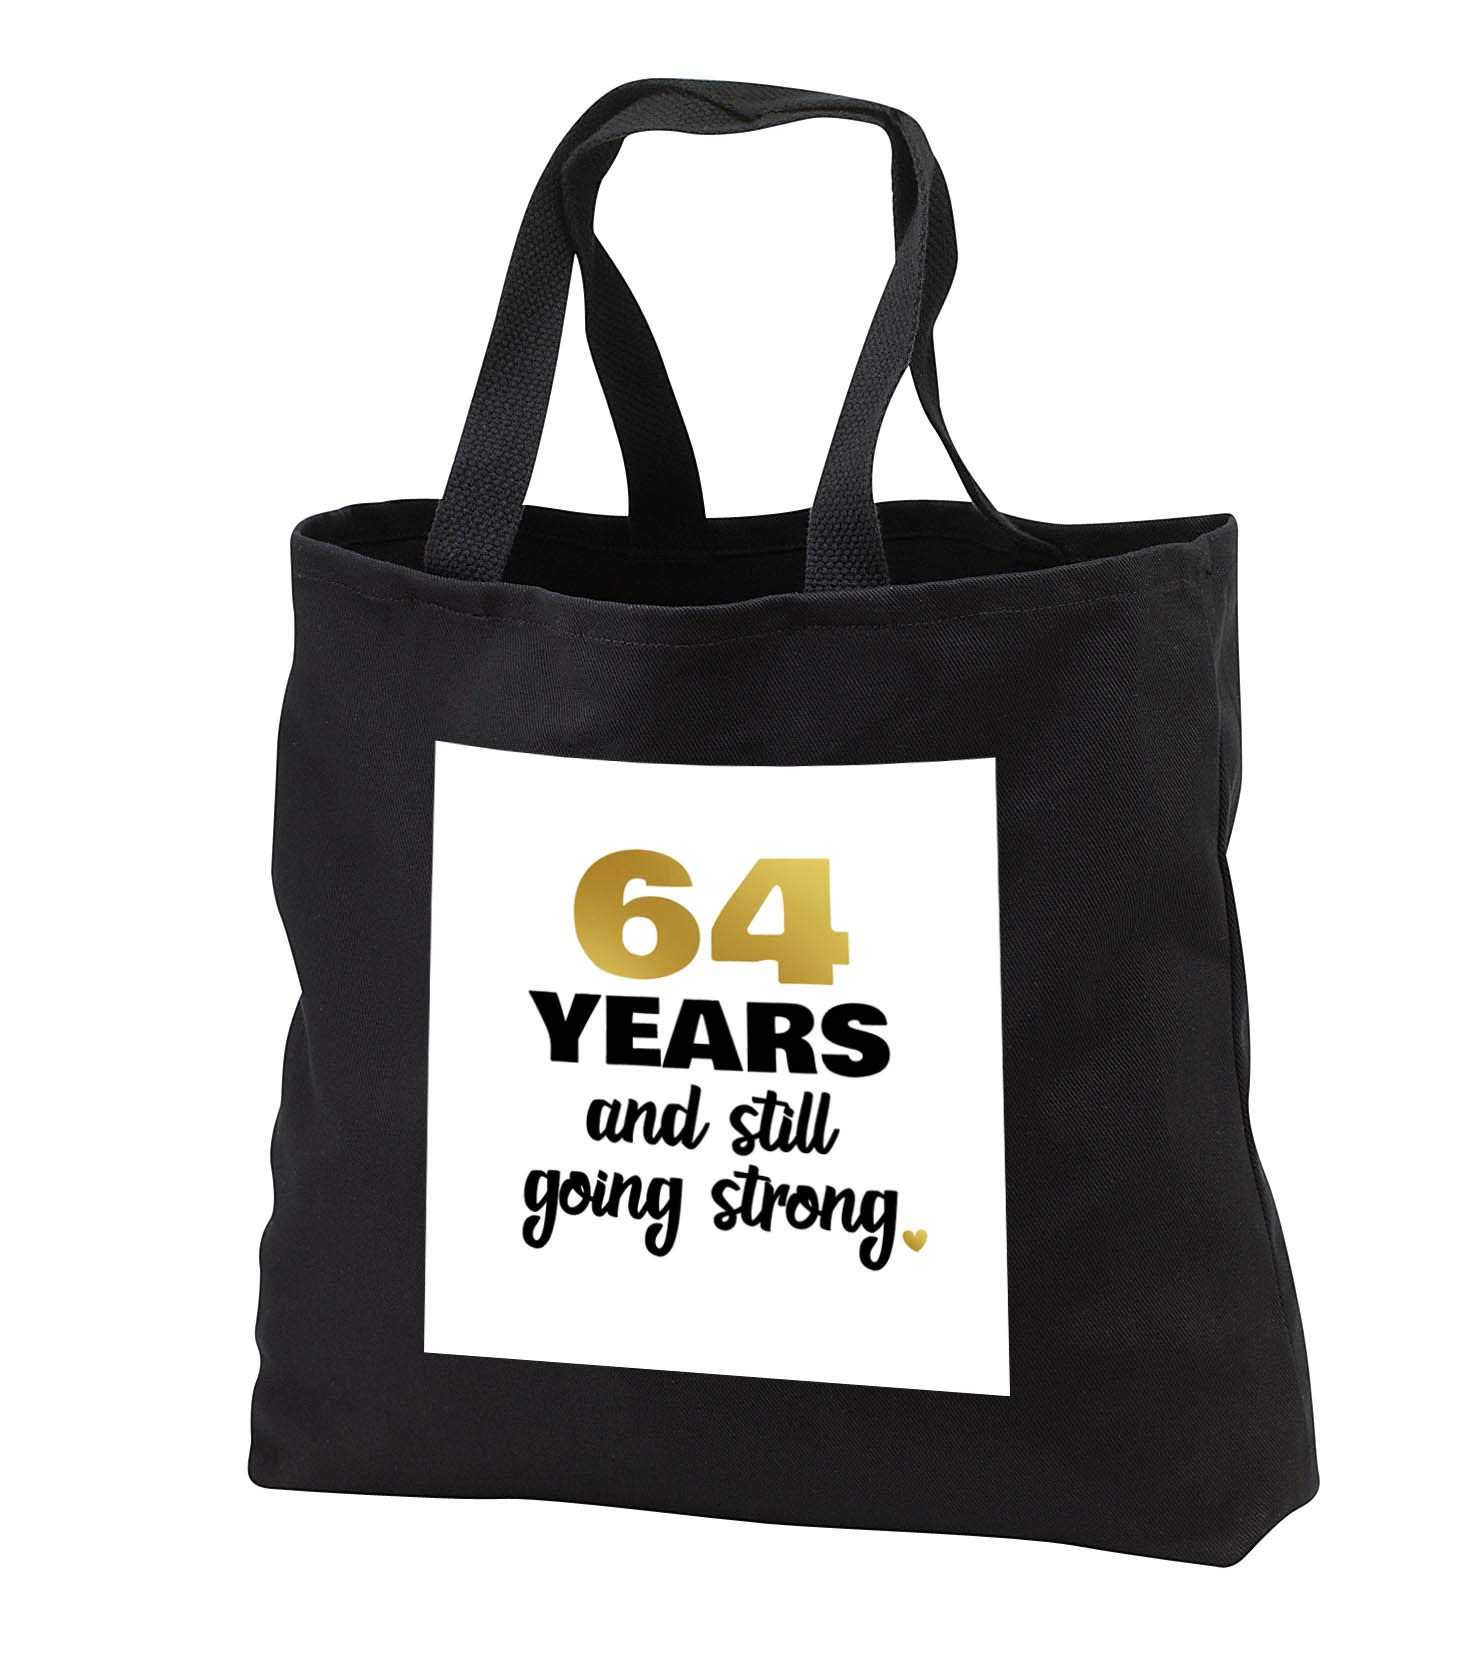 Janna Salak Designs Anniversary - 64 Year Anniversary Still Going Strong 64th Wedding Anniversary Gift - Tote Bags - Black Tote Bag JUMBO 20w x 15h x 5d (tb_289696_3)